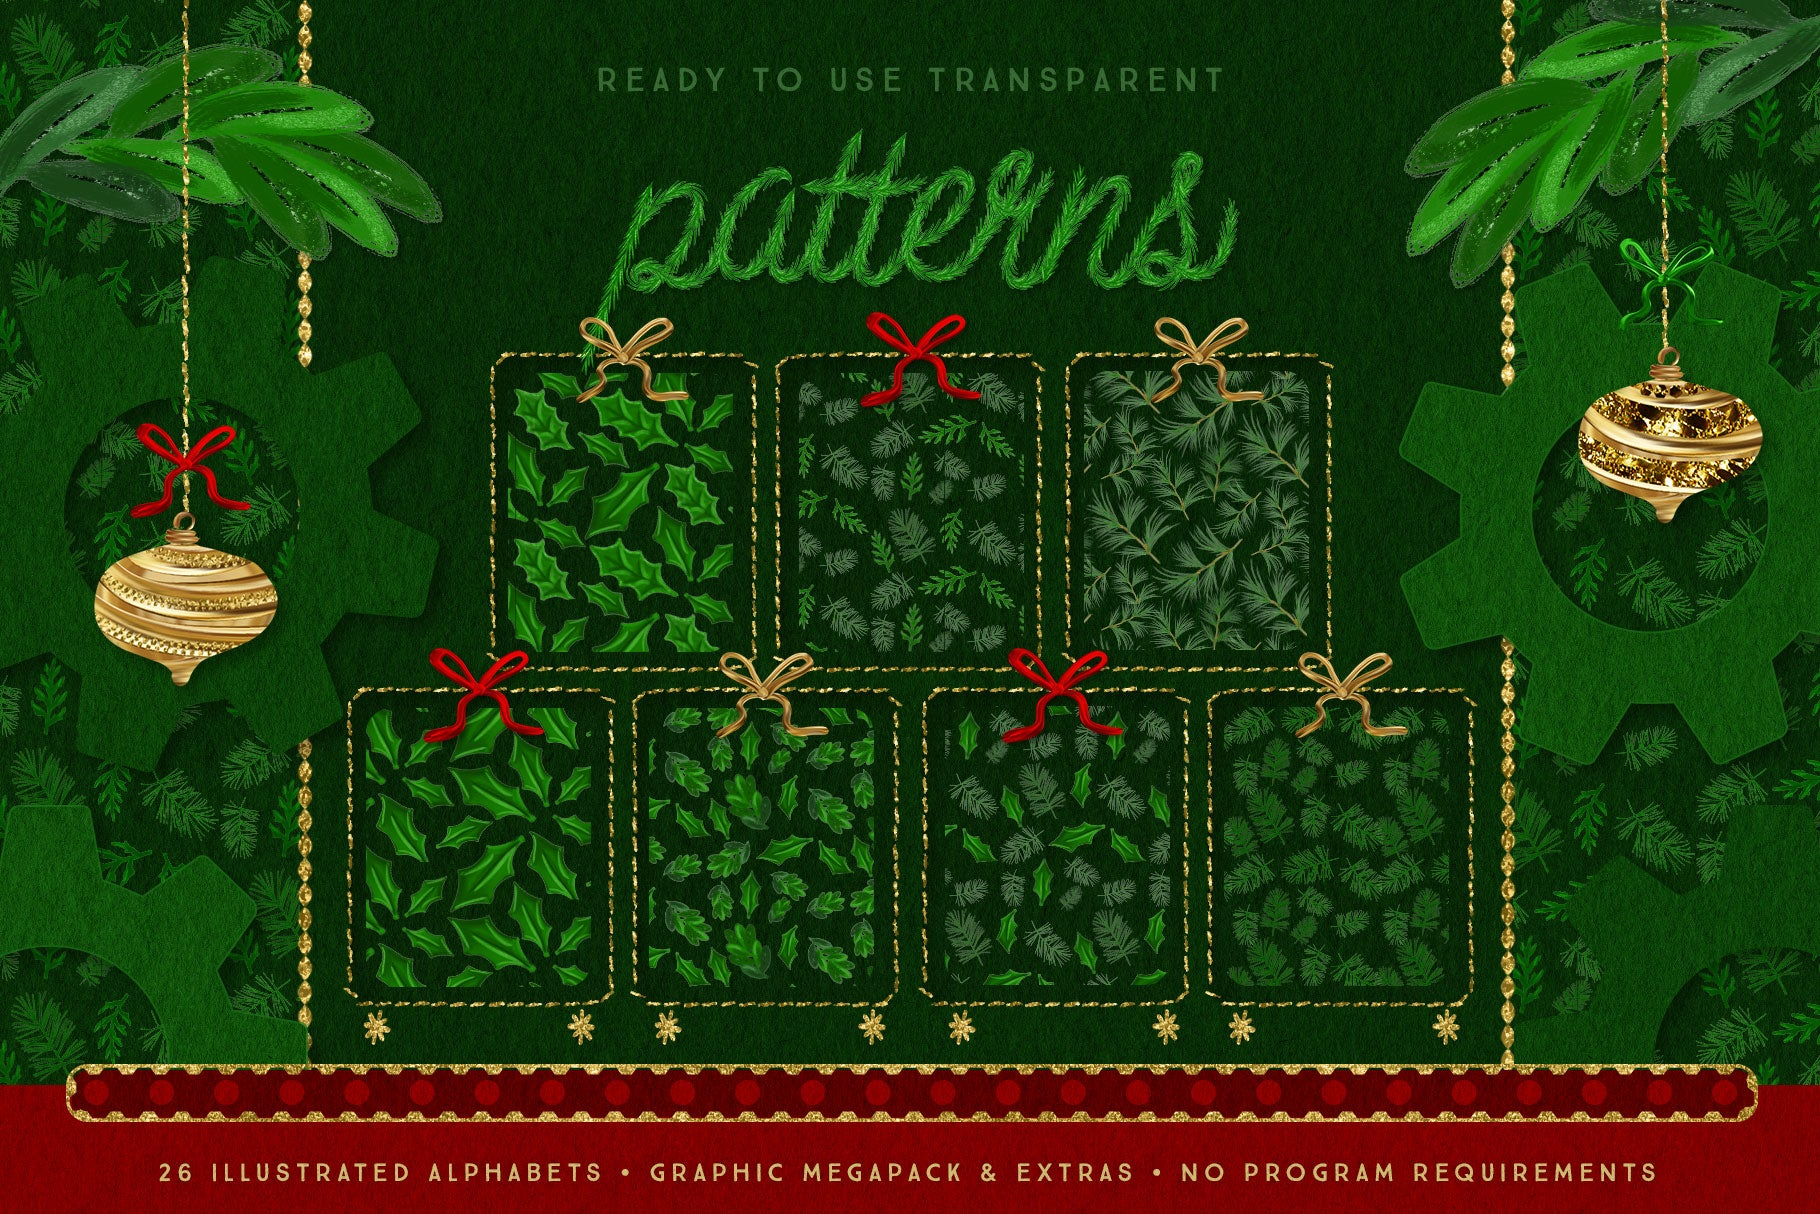 Luxe Christmas & Holiday Greenery Alphabets: mistletoe patterns